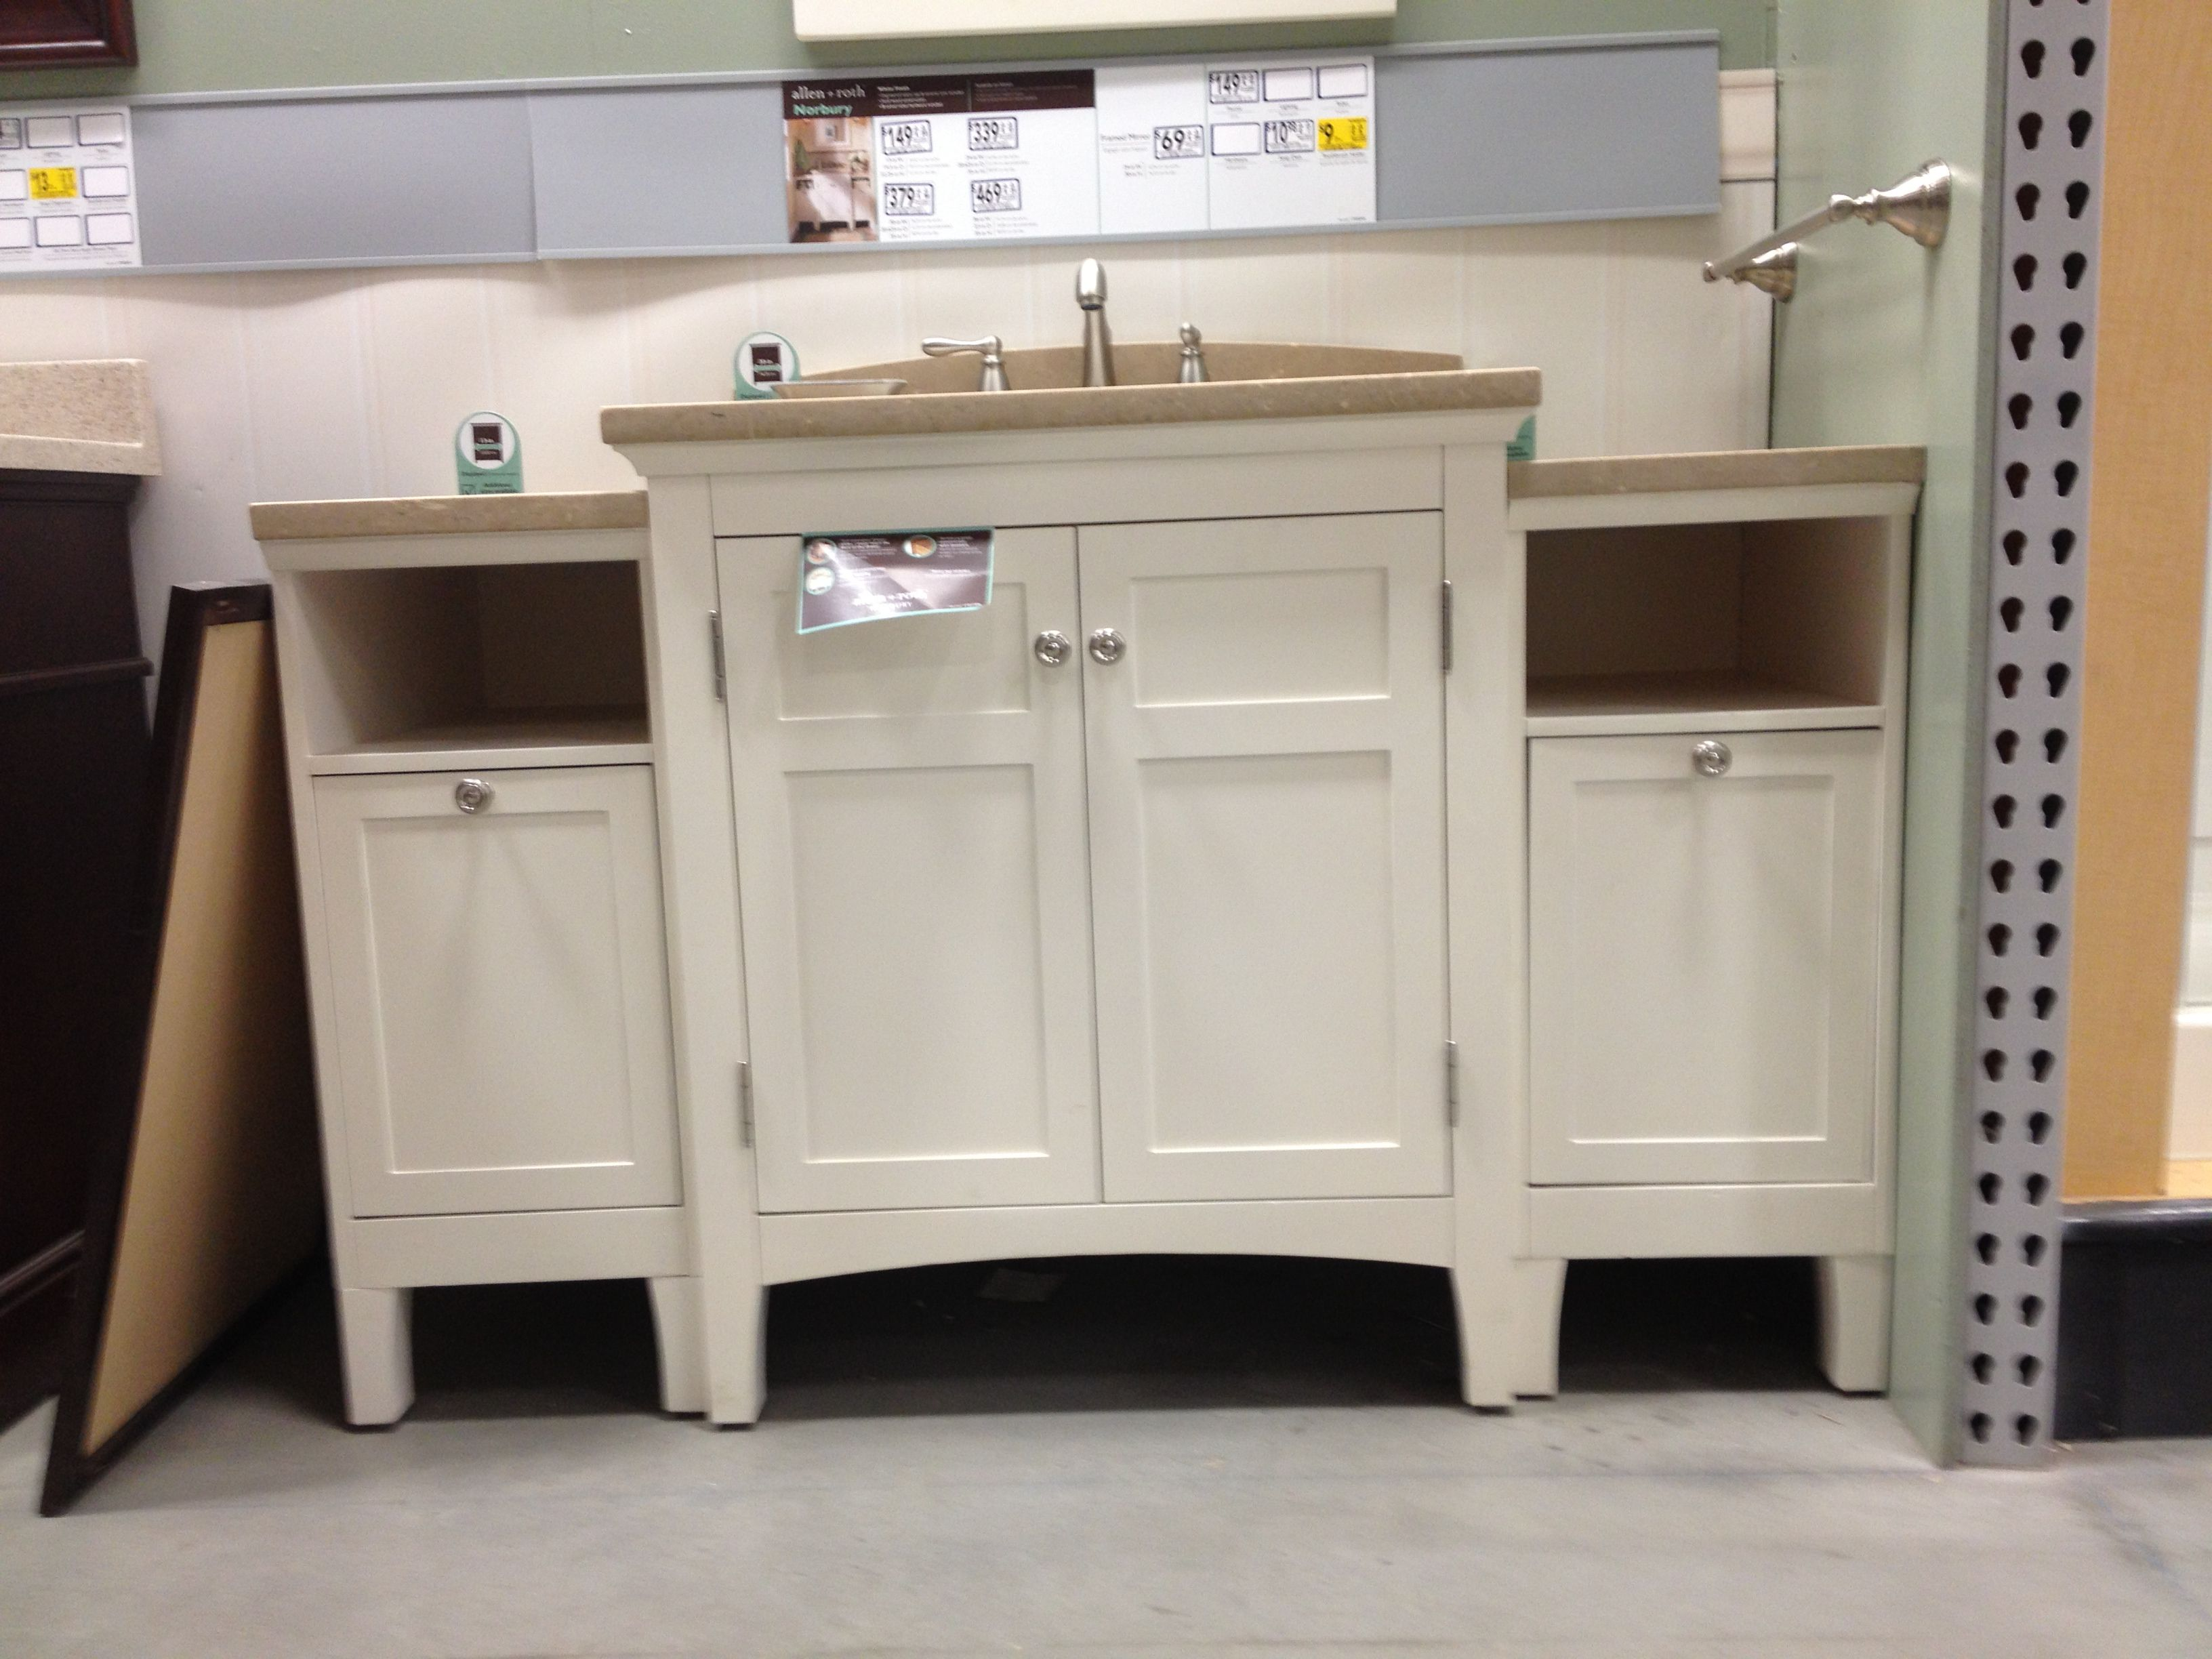 From lowes. 56 inches total | Vanity, Bathroom, Master bath